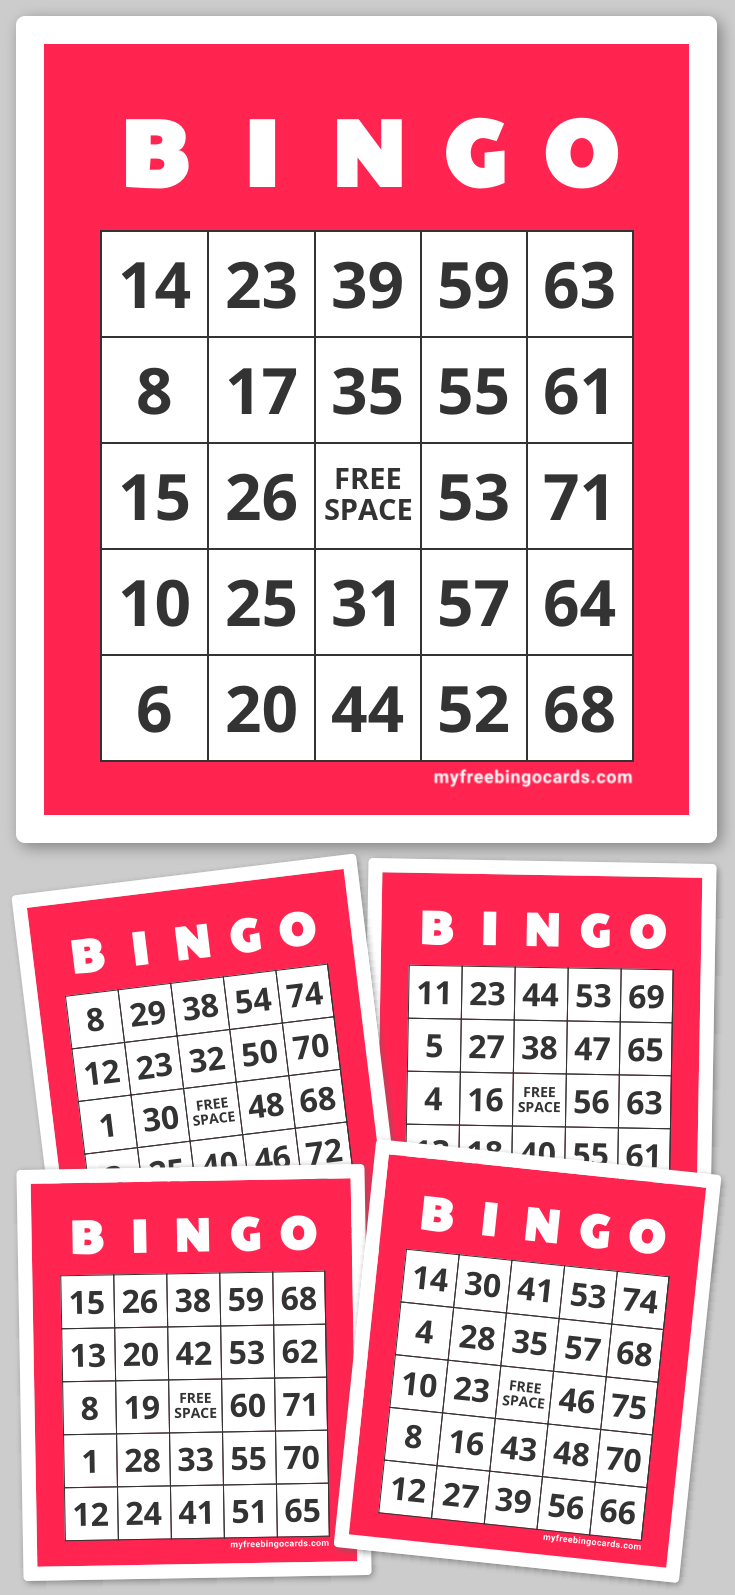 Play virtual 175 Number Bingo with your friends for free